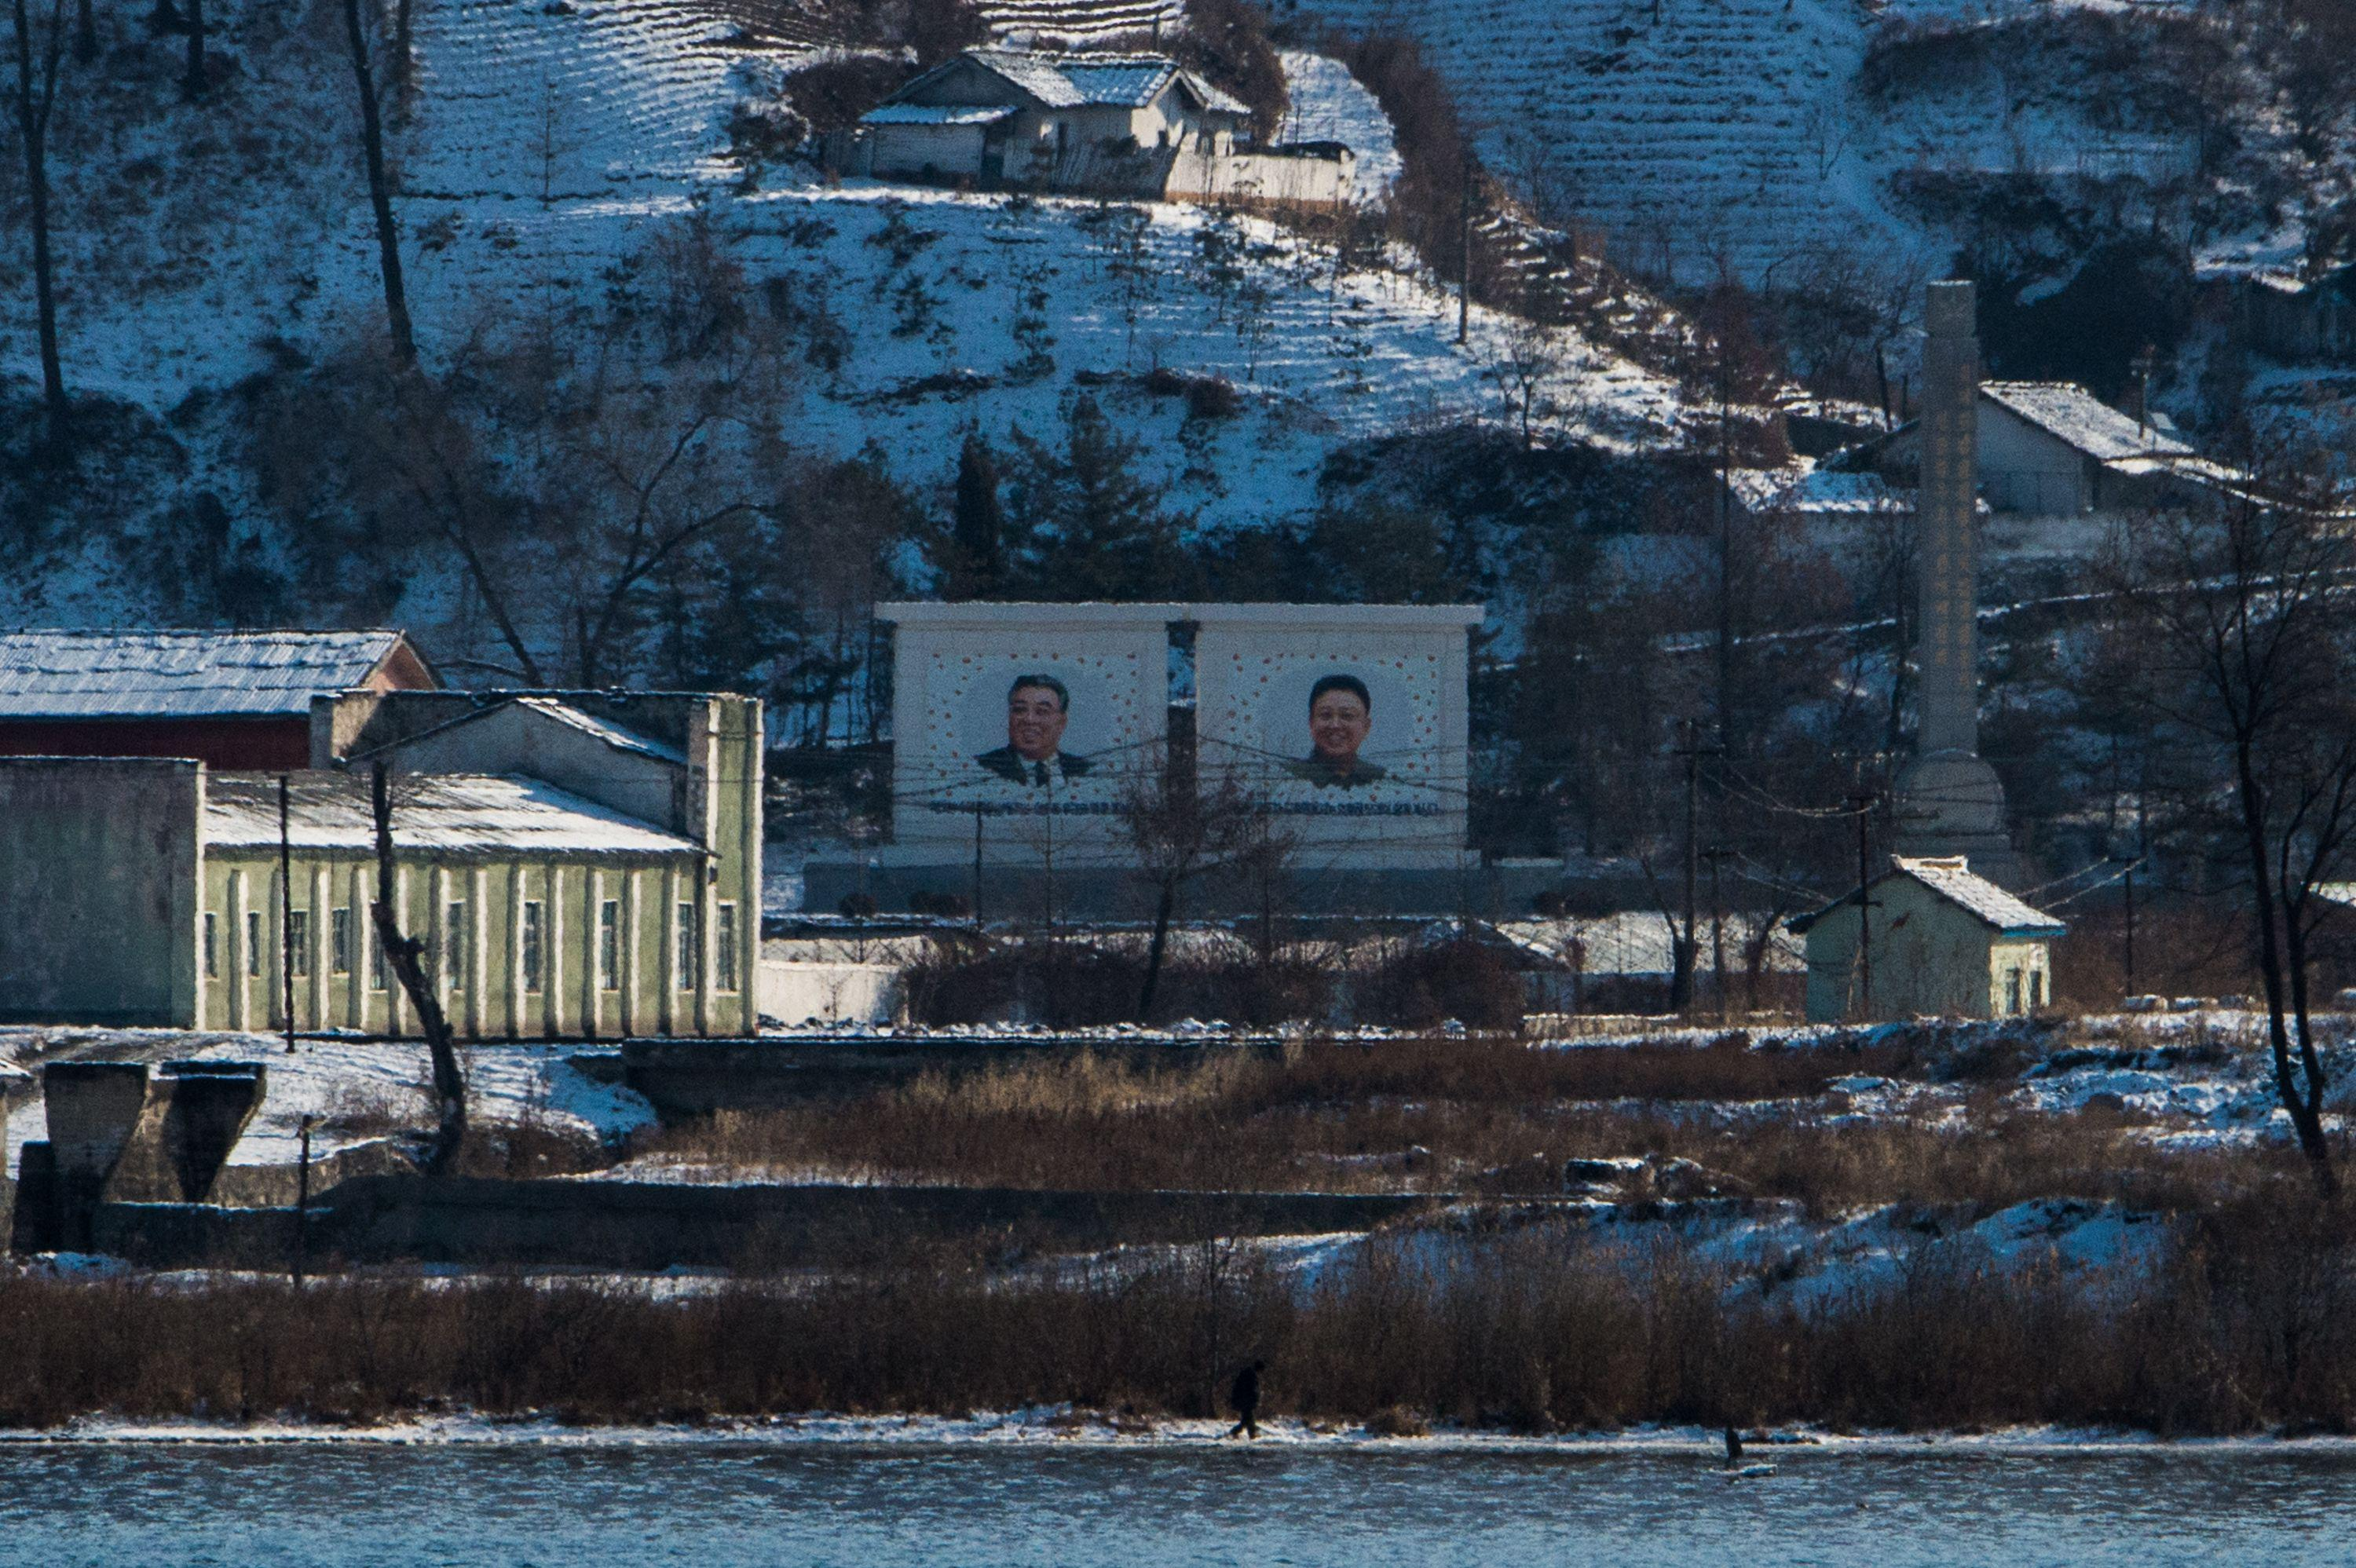 The portraits of Kim Il-Sung, left, and Kim Jong-Il in North Korea, as seen from Dandong, China, on Jan. 10.